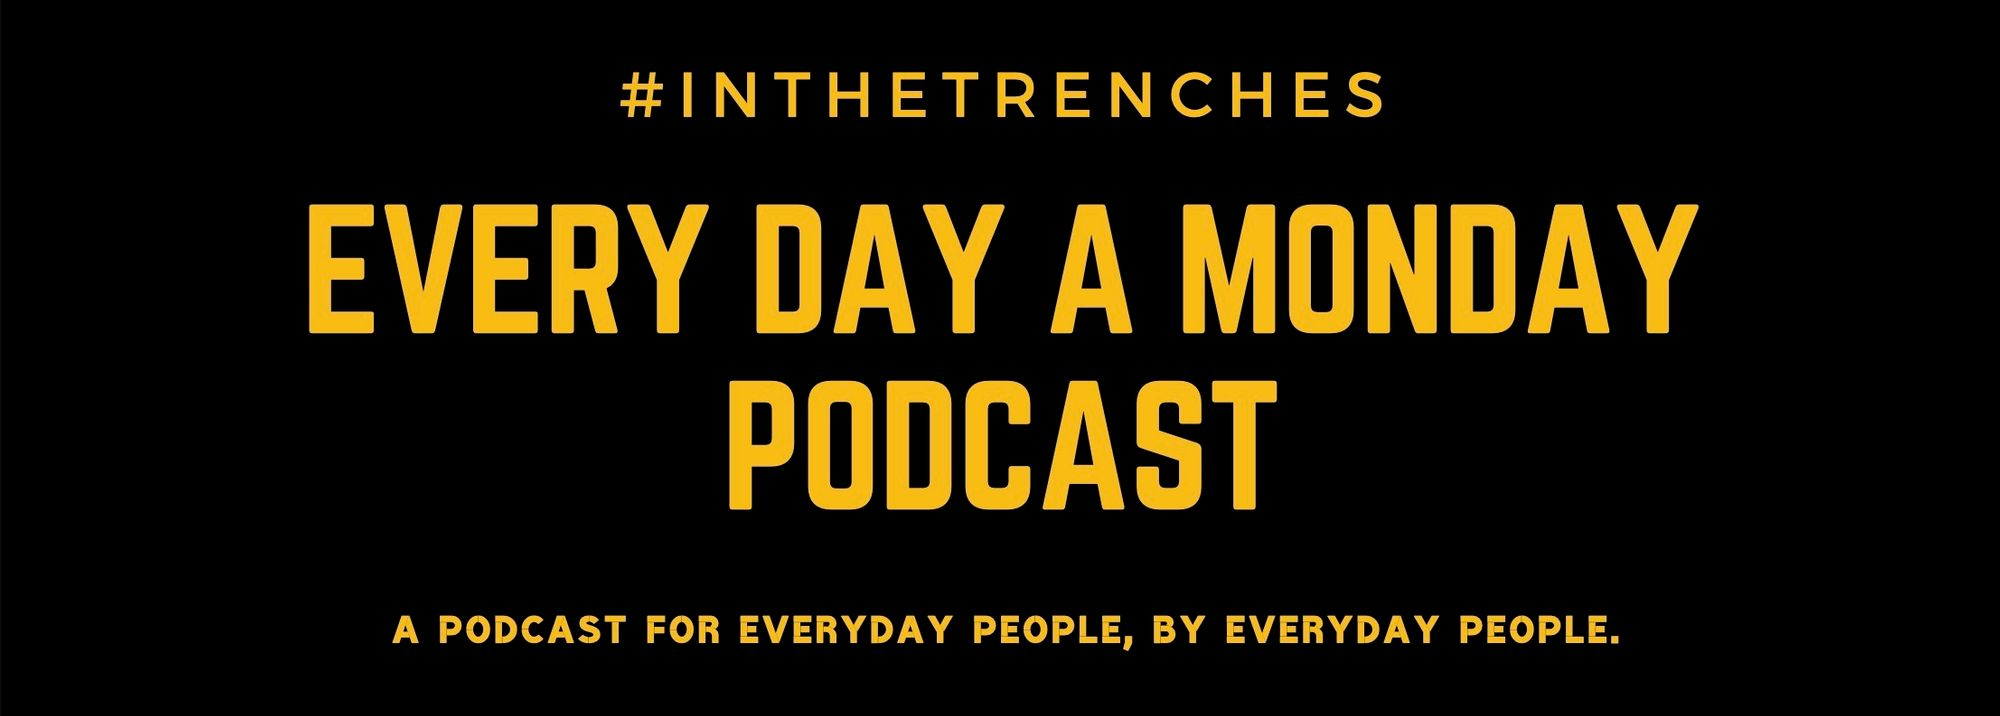 Every Day A Monday Podcast